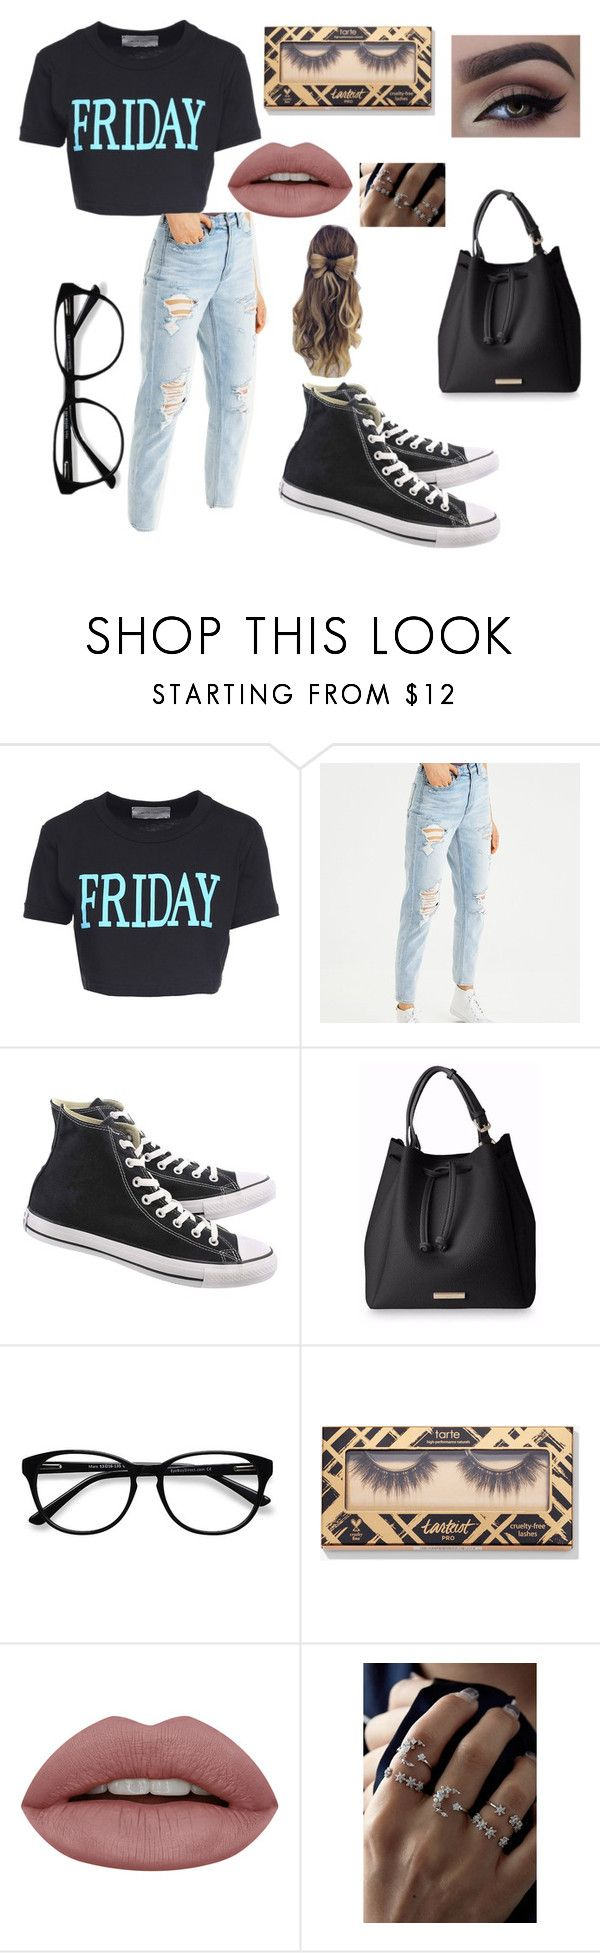 Casual dinner outfit clothes i would wear xd pinterest casual